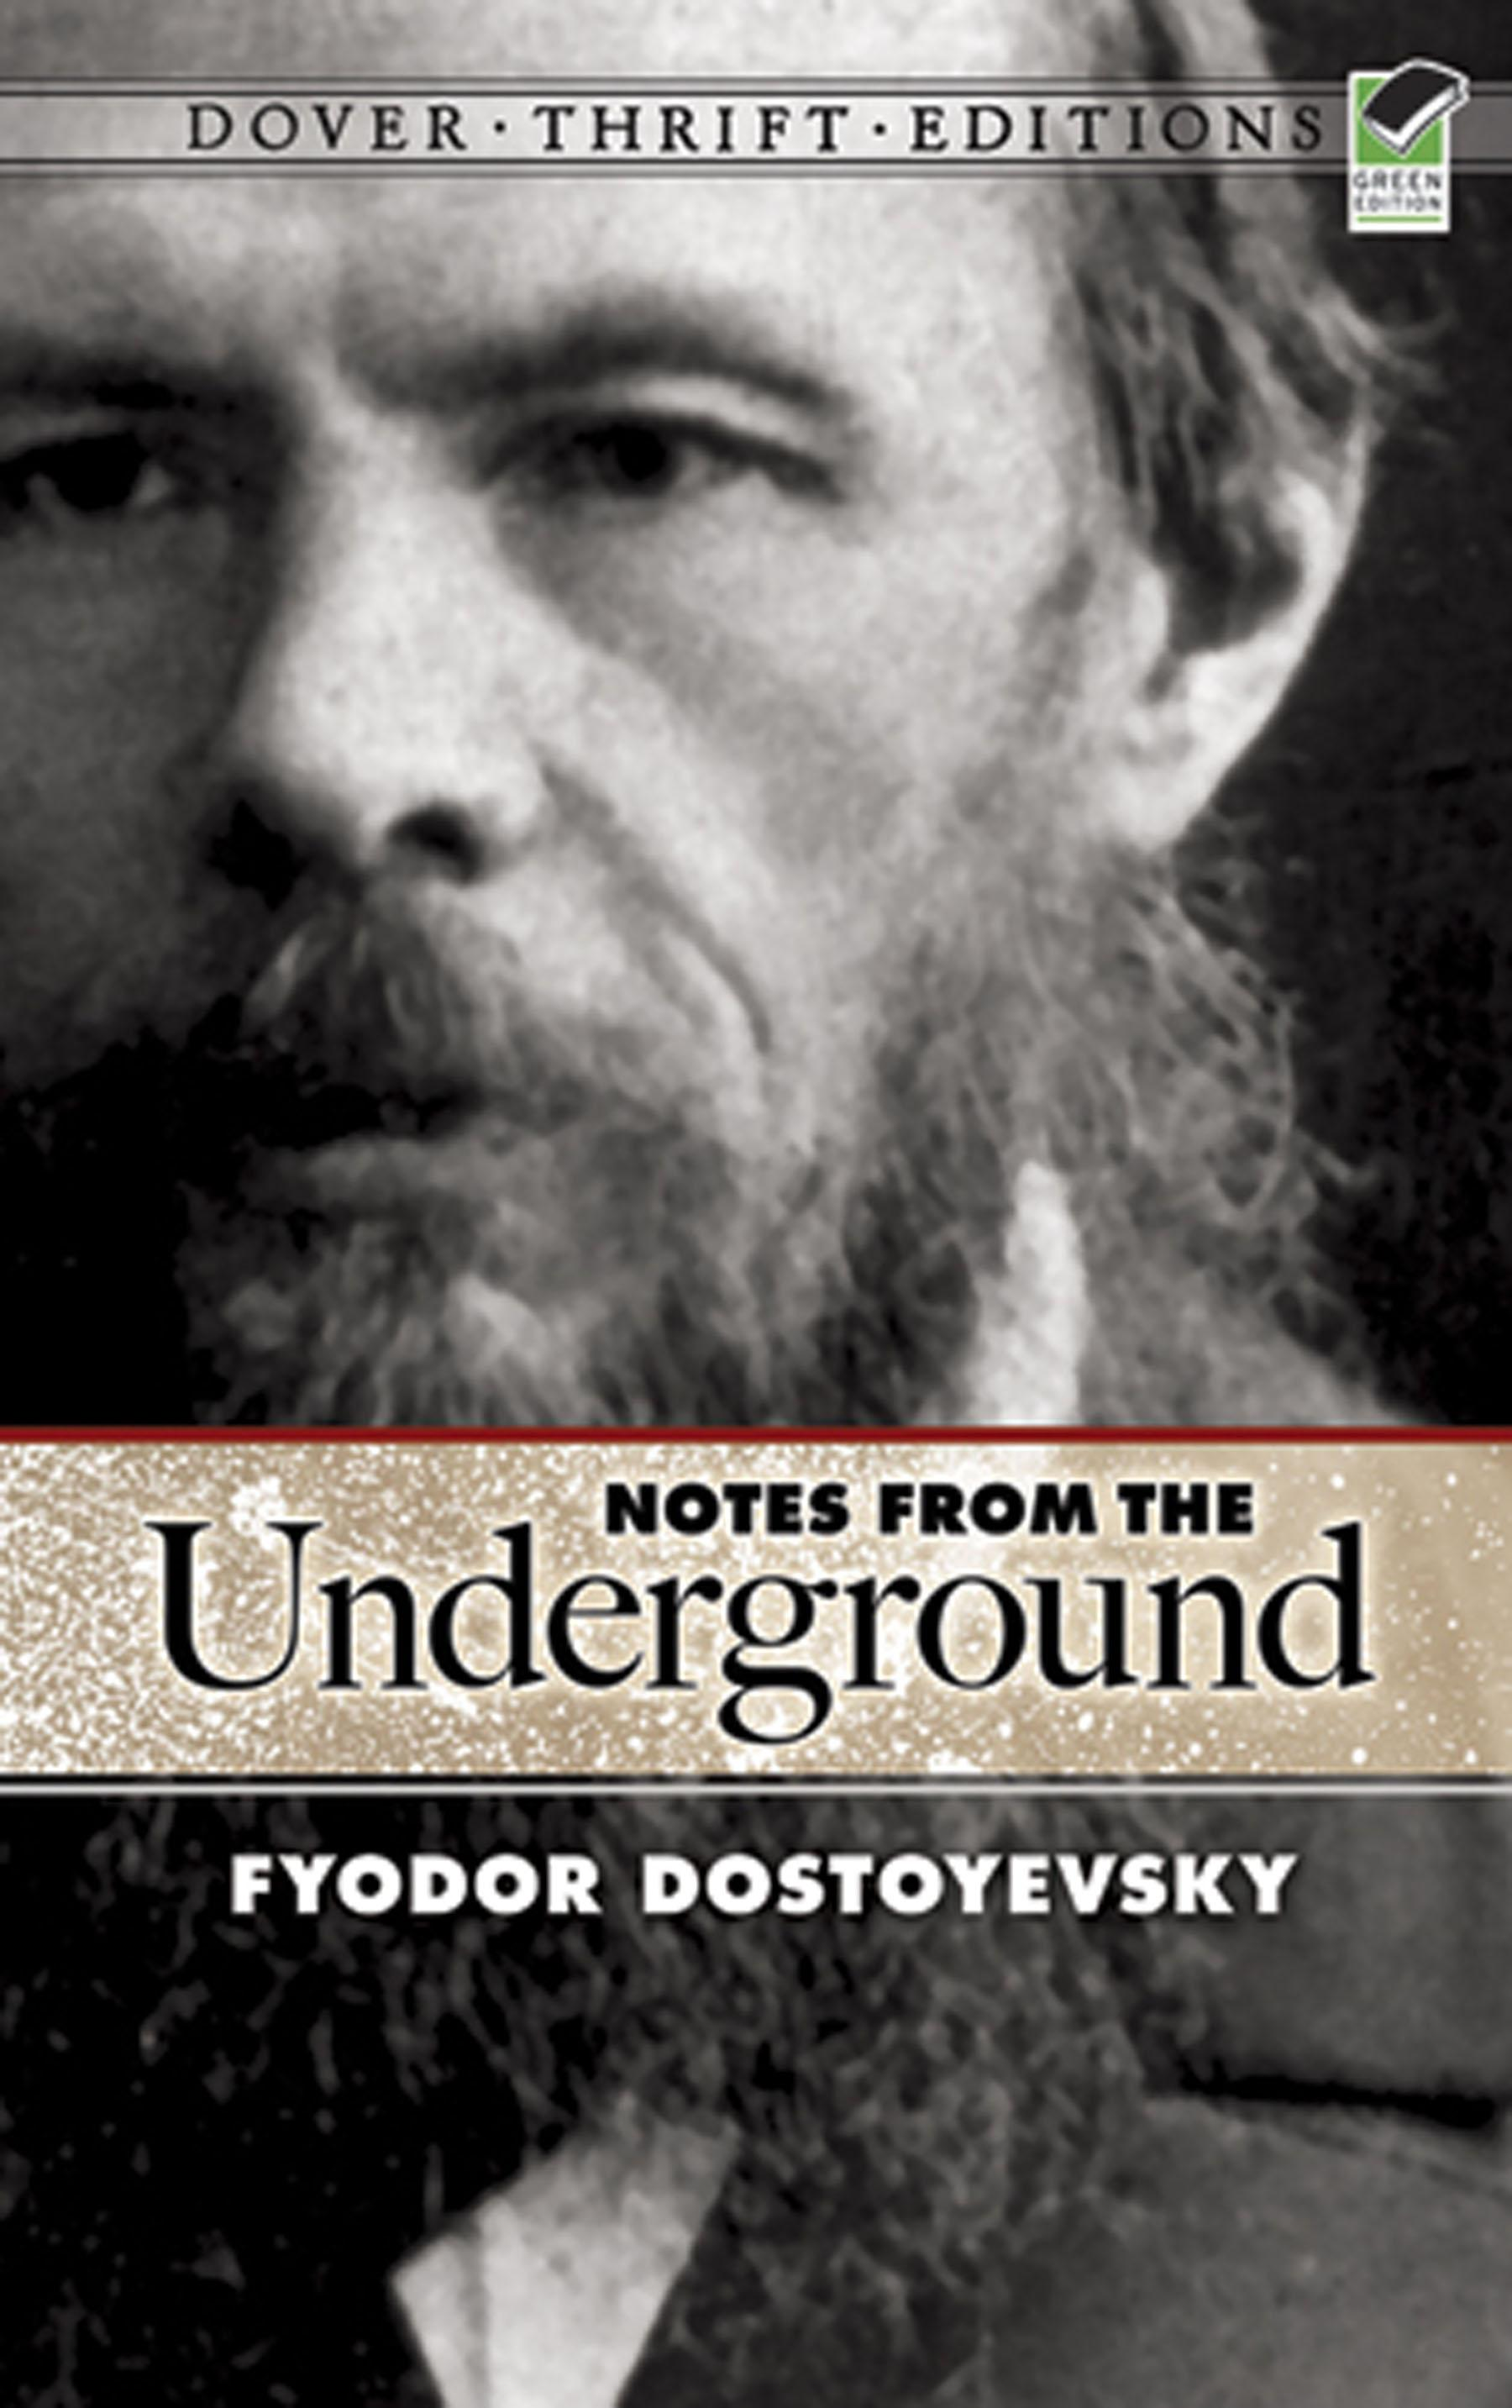 essay prompts for notes from underground Immediately download the notes from the underground summary, chapter-by-chapter analysis, book notes, essays, quotes, character descriptions, lesson plans, and more - everything you need for studying or teaching notes from the underground.